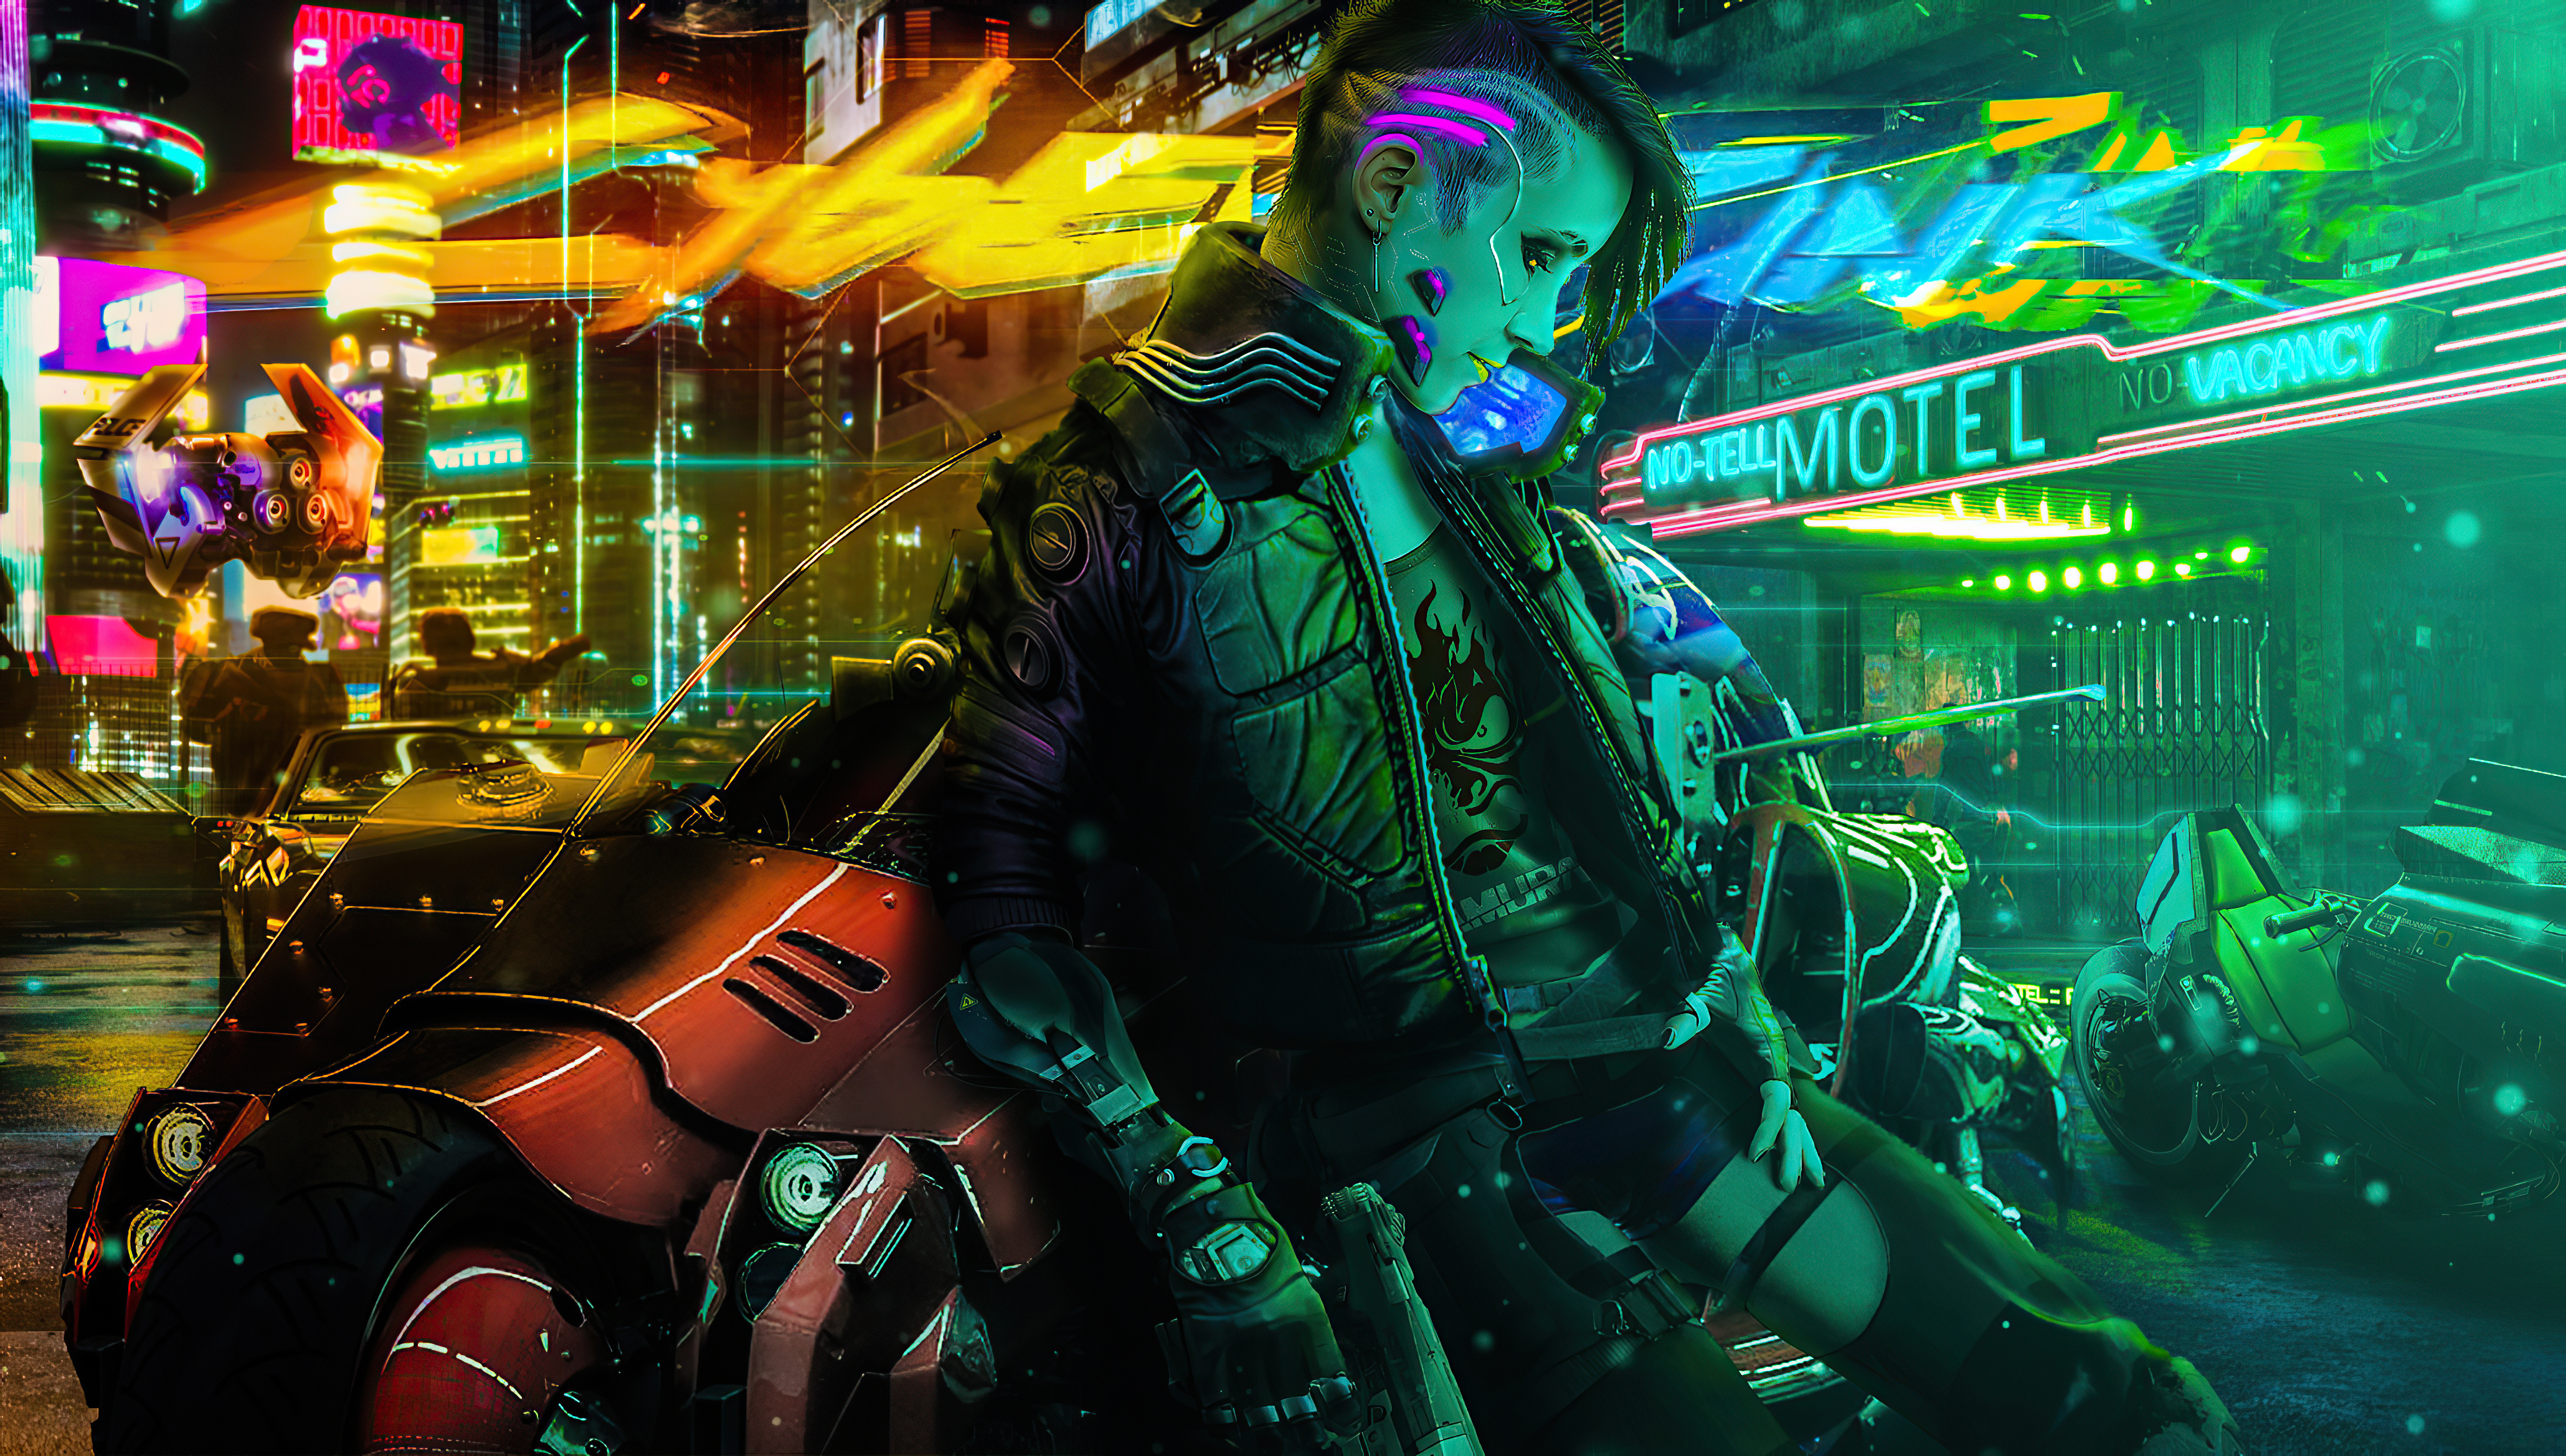 Wallpaper 4k Cyberpunk Girl Biker New 2020 4k Cyberpunk Girl Biker New 2020 4k Wallpapers